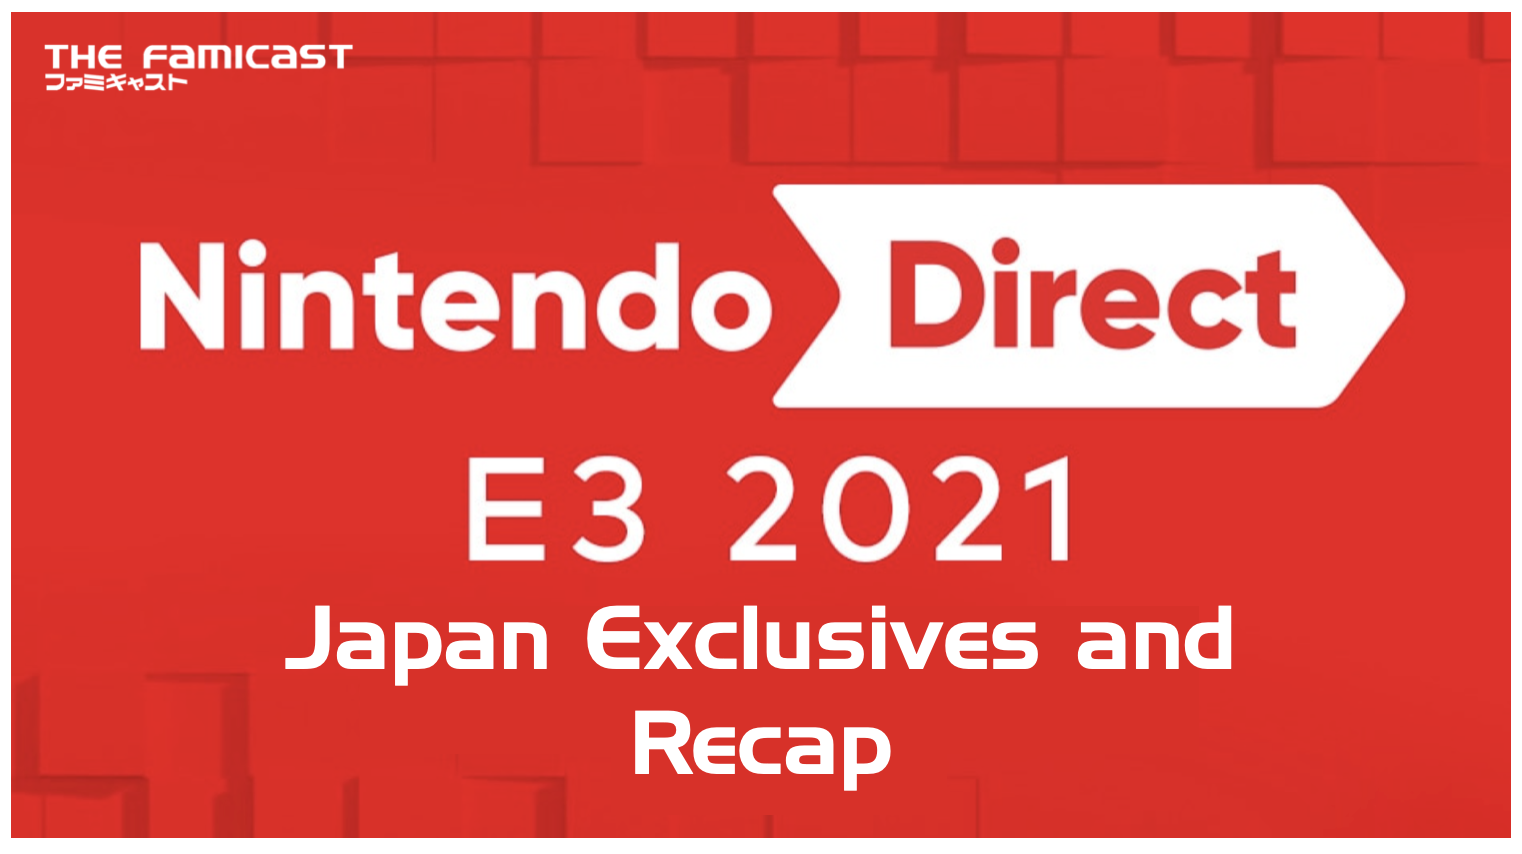 Exclusives from the Japanese E3 2021 Nintendo Direct